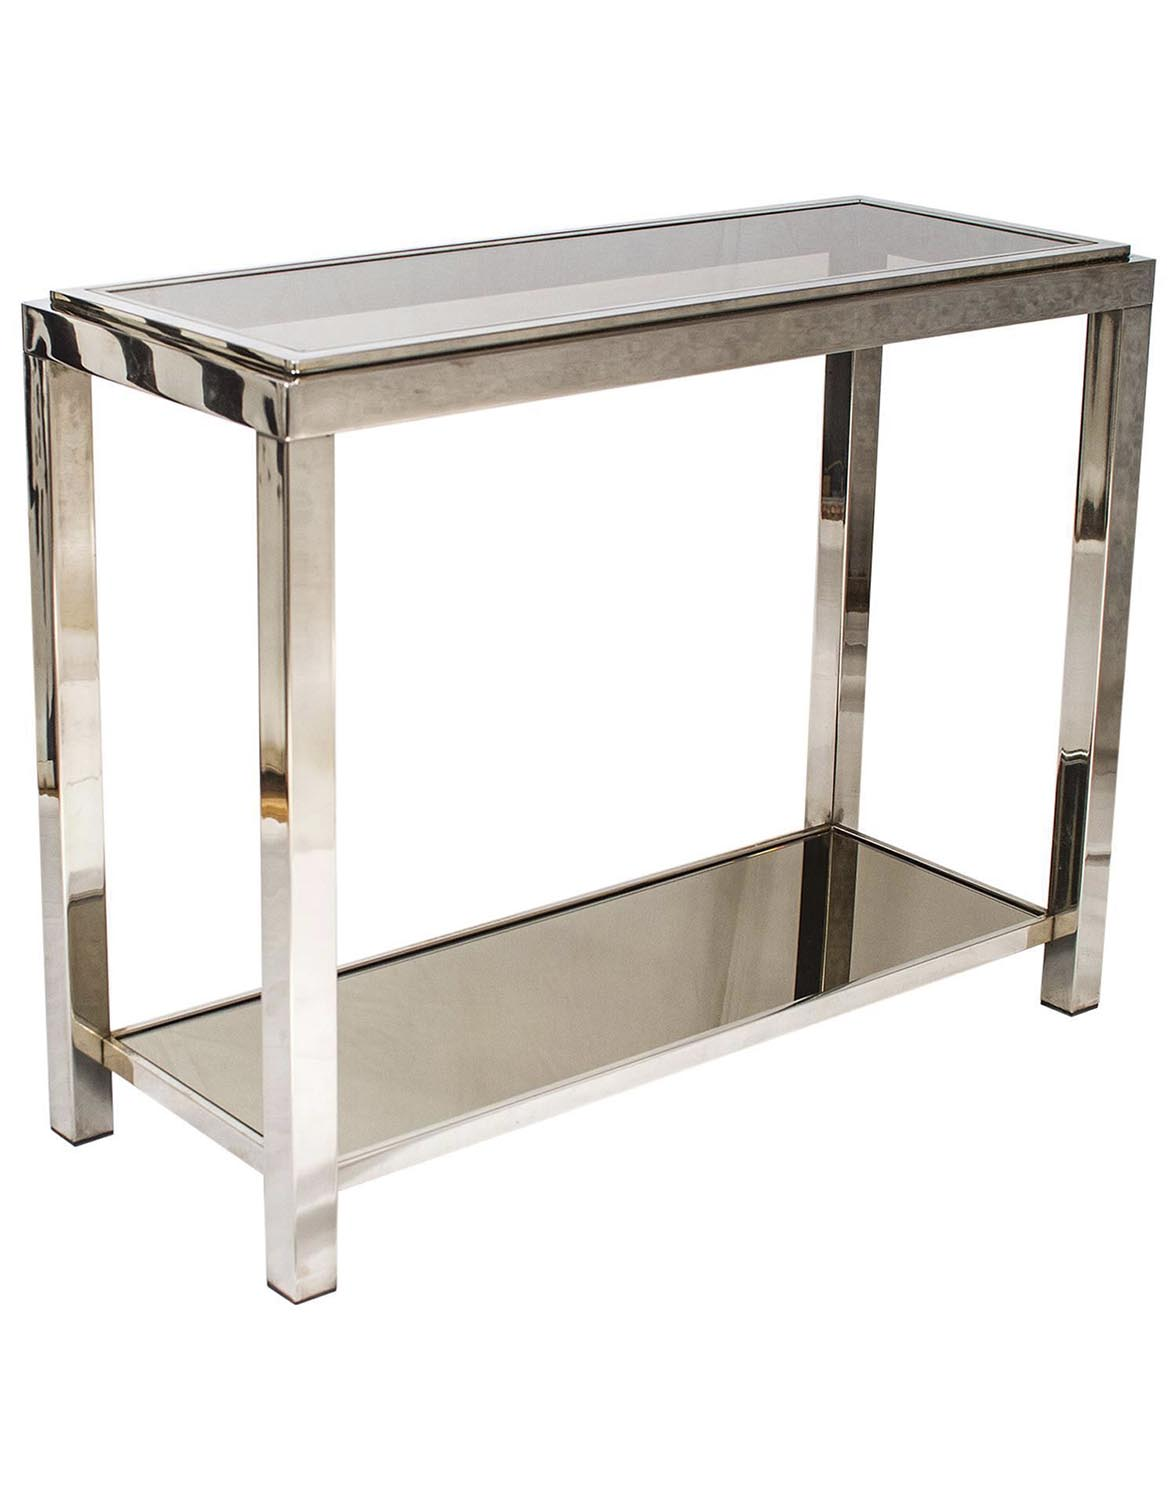 vogue chrome sofa table cheap sectional sofas utah console joevin ortjens galerie